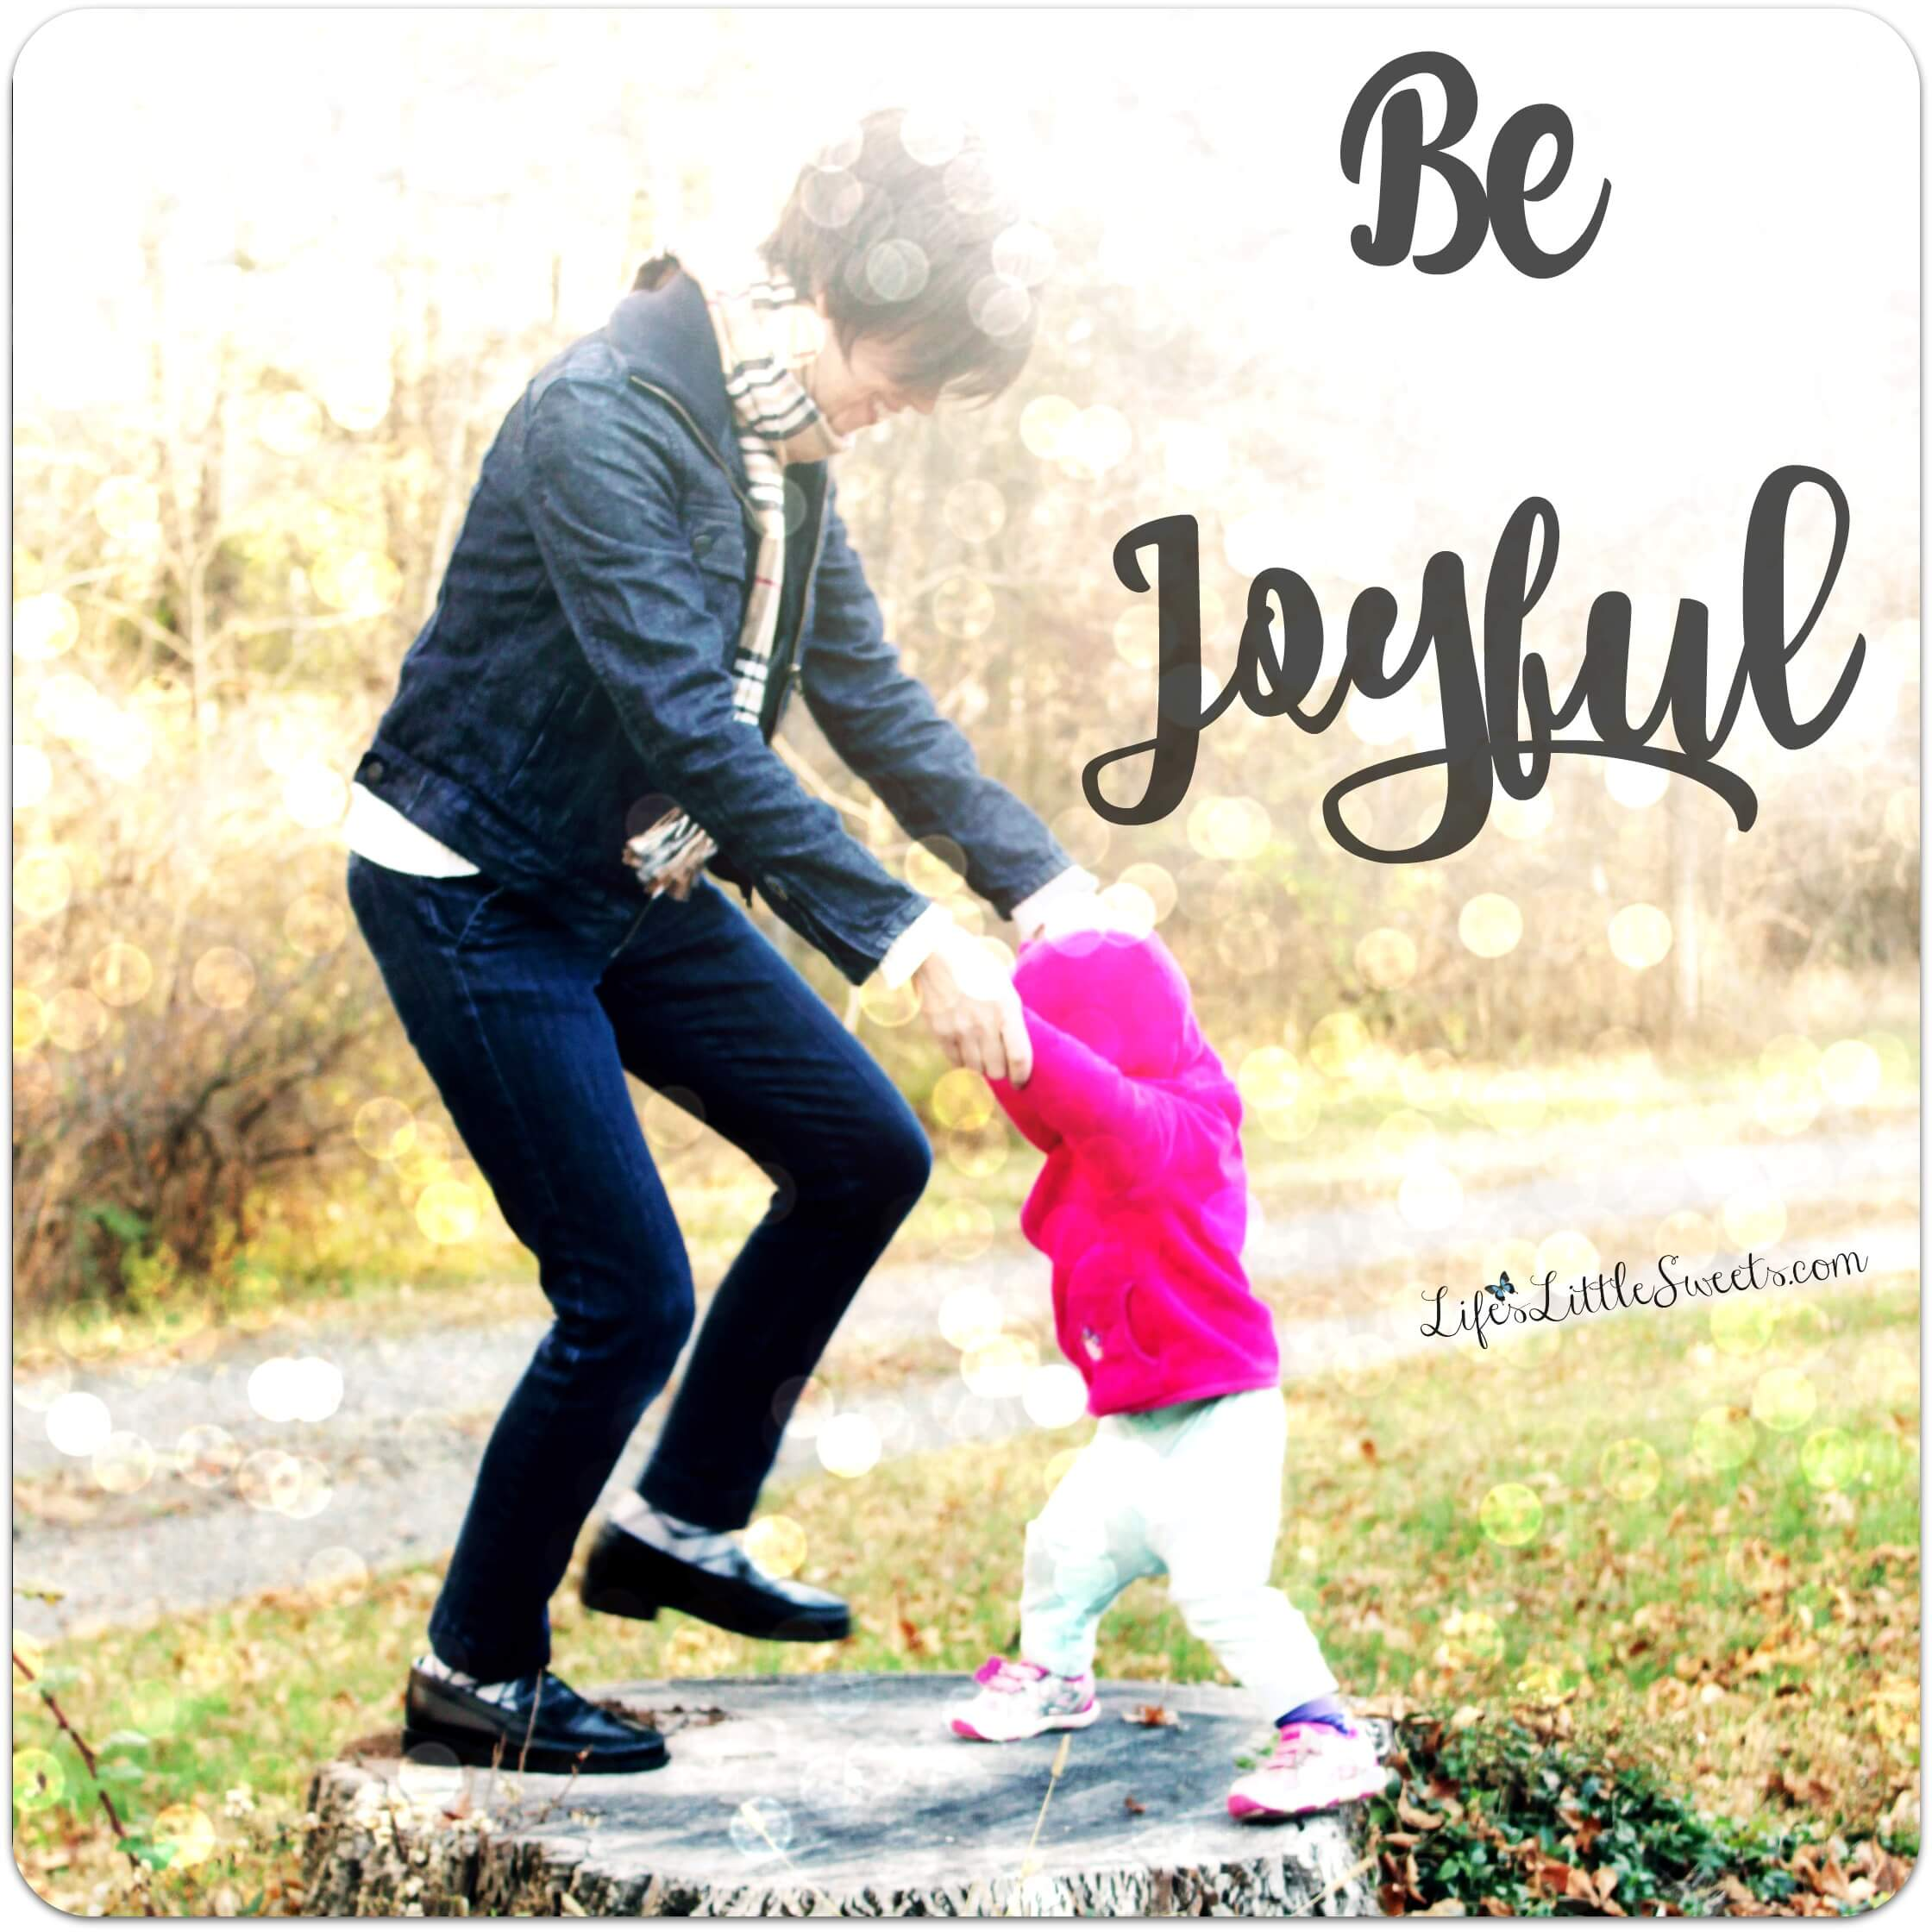 Quote: Be Joyful #BeJoyful #lifeslittlesweets #joy #thankfulness